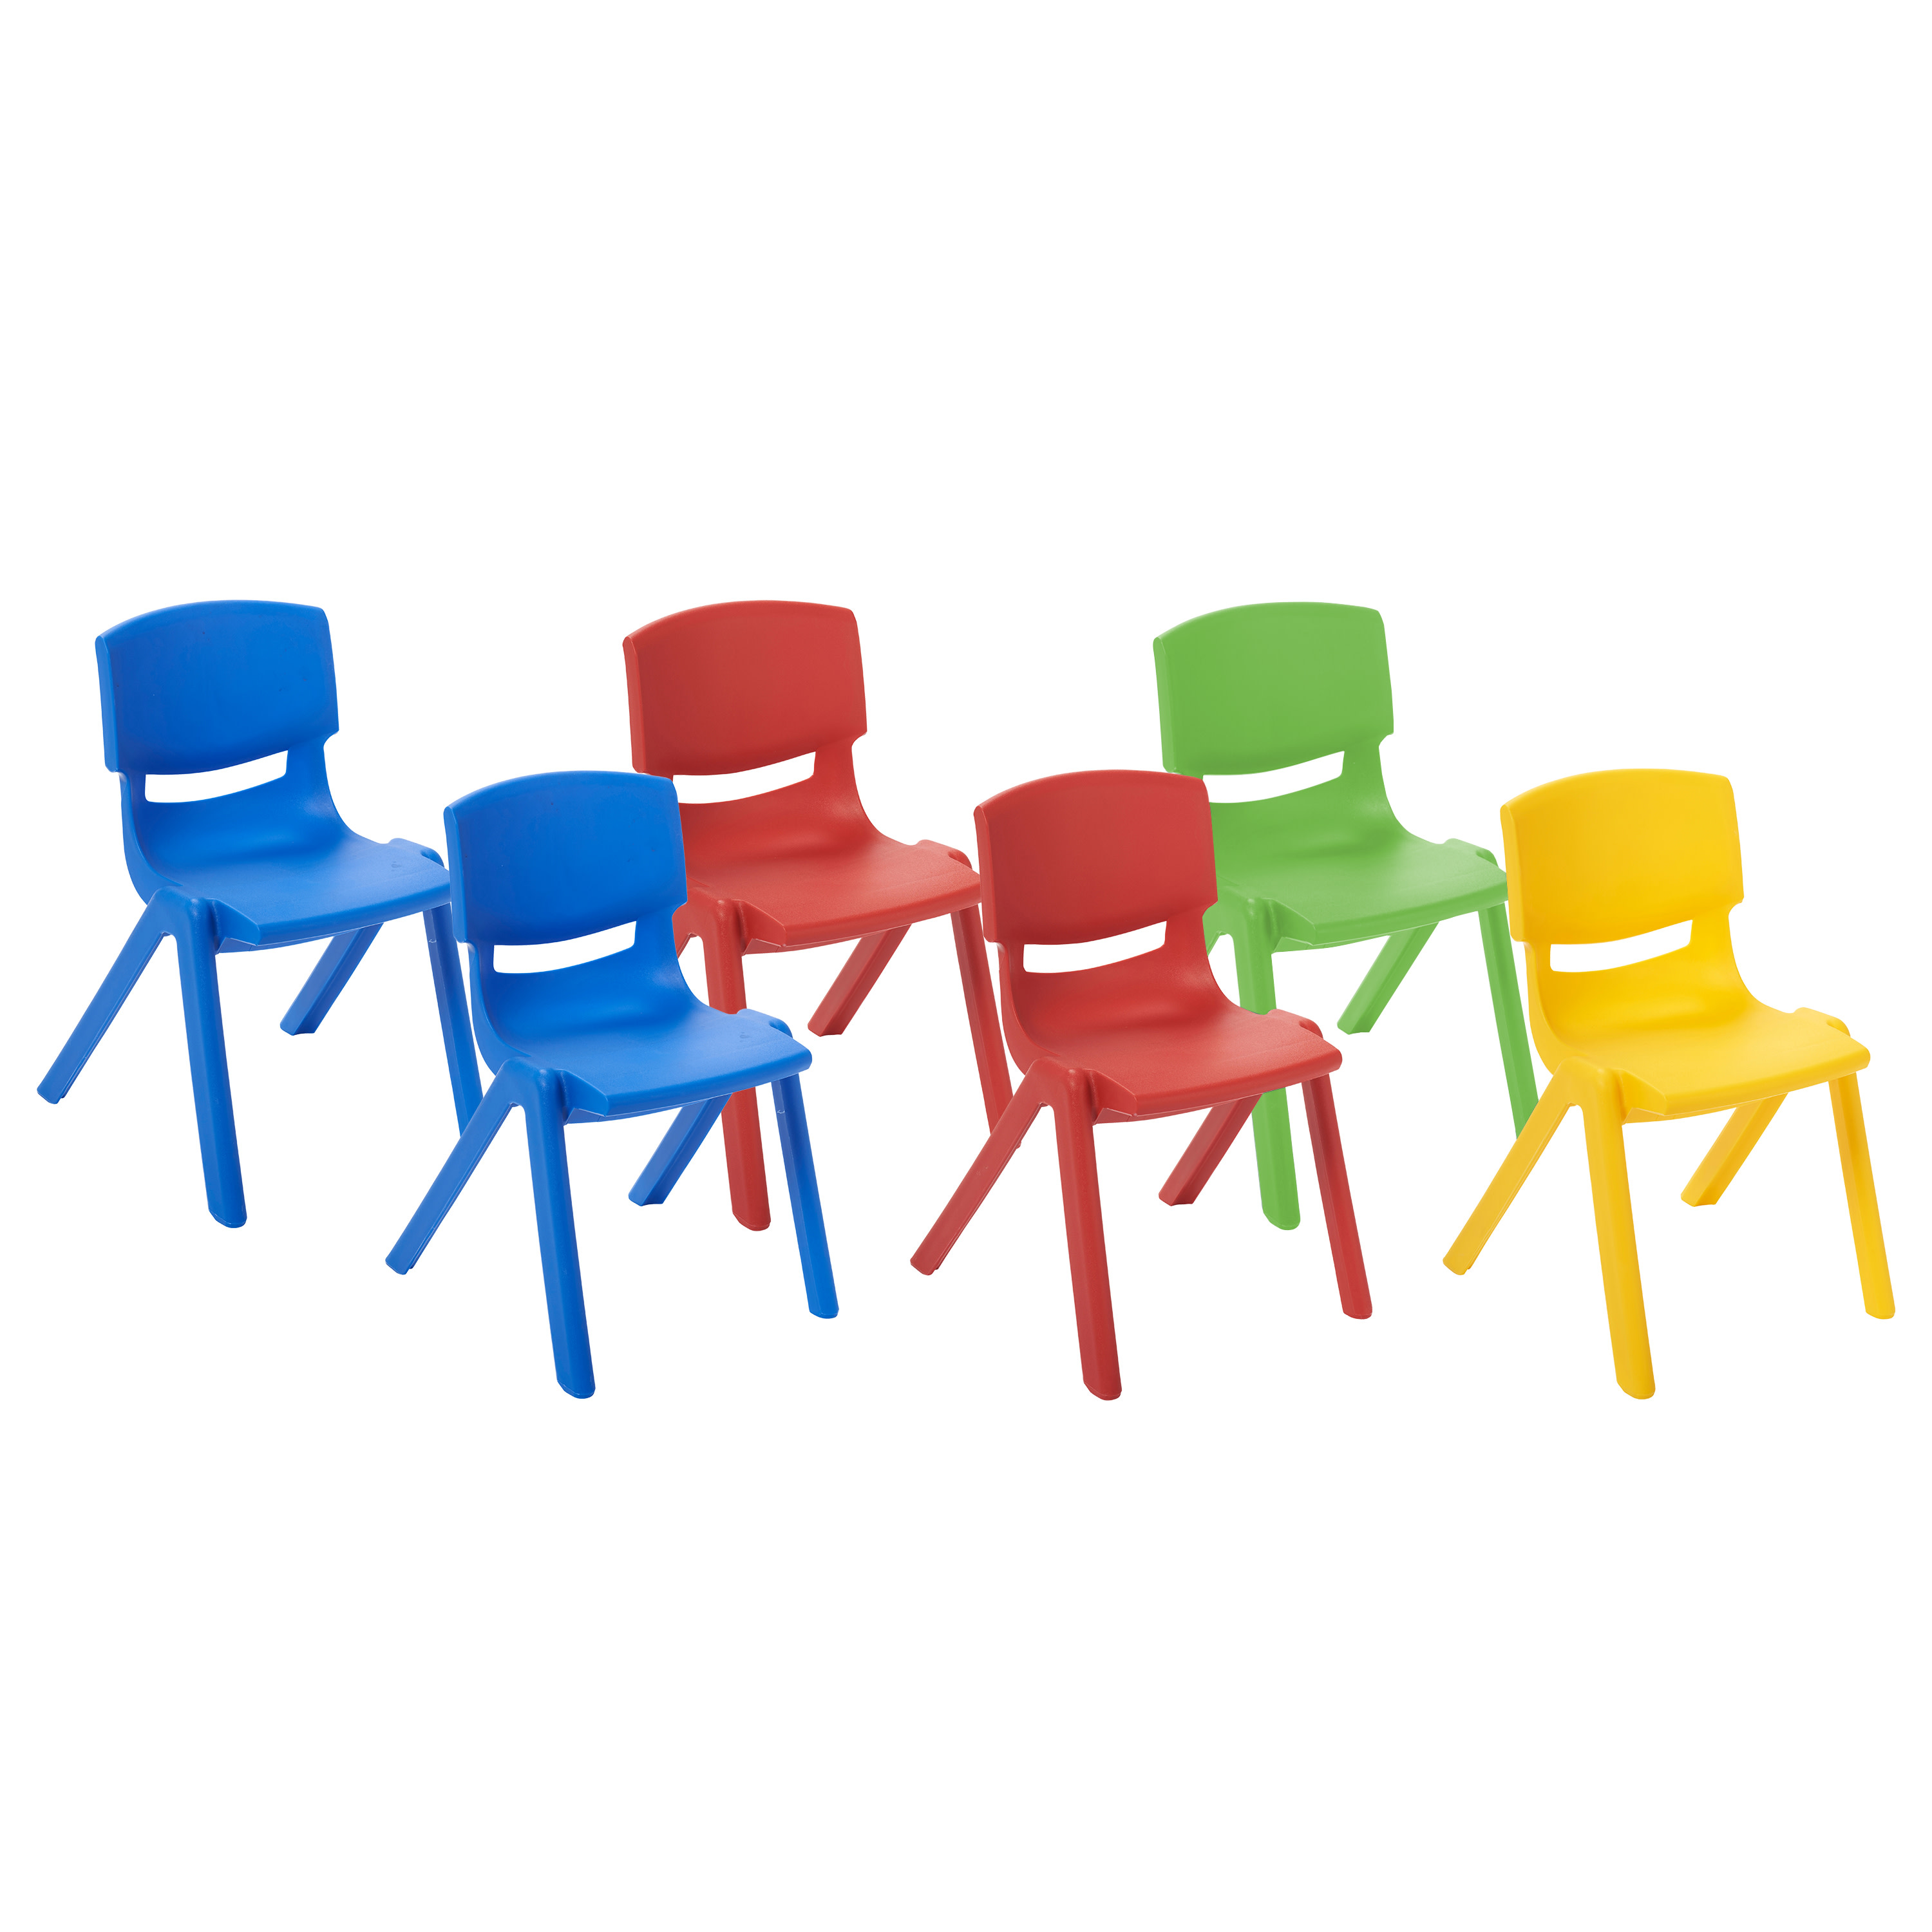 walmart resin chairs squatters chair covers brisbane ecr4kids 12in pack 6 piece assorted com